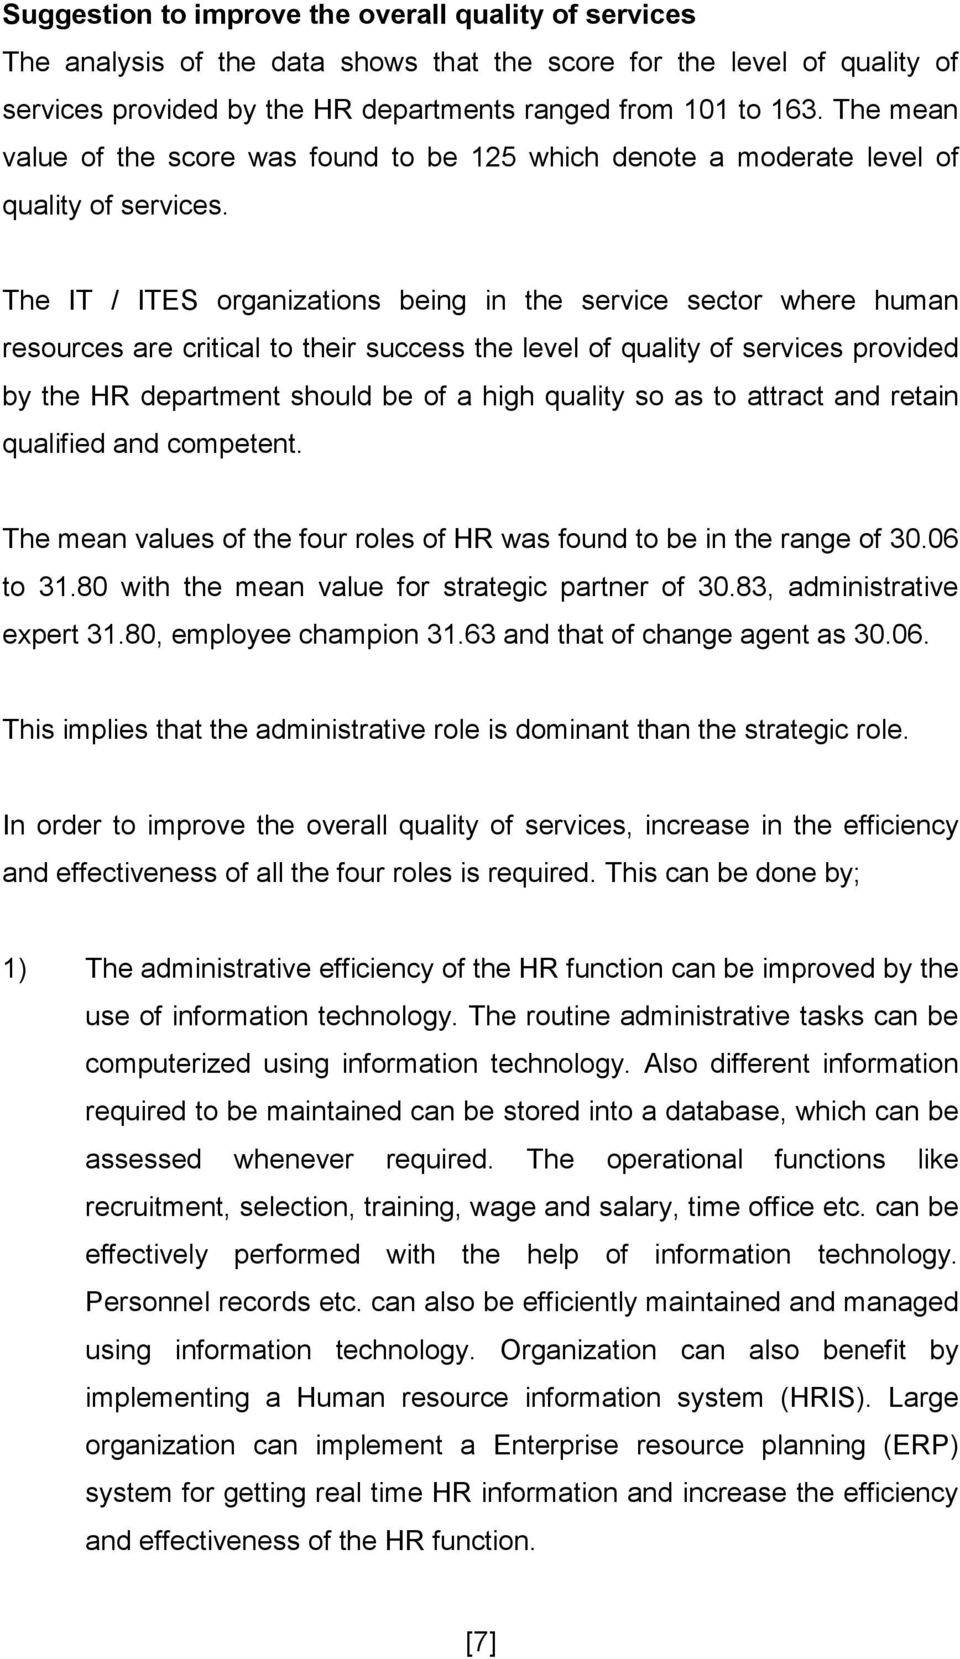 The IT / ITES organizations being in the service sector where human resources are critical to their success the level of quality of services provided by the HR department should be of a high quality